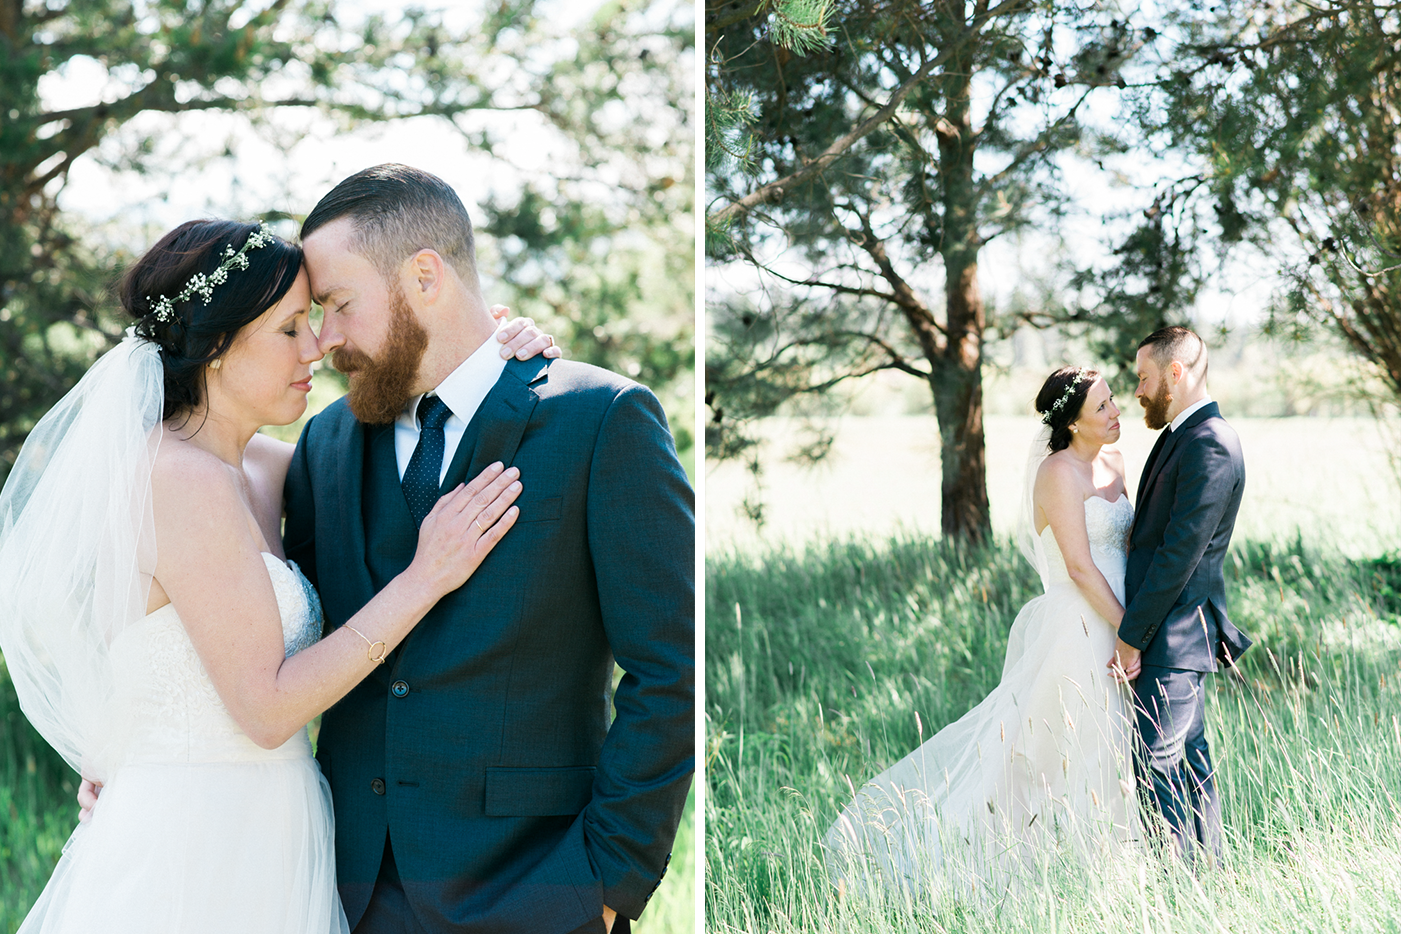 black-butte-ranch-oregon-outdoor-natural-field-wedding-amy-tyler-portland-photographer-shelley-marie-photo-1.png